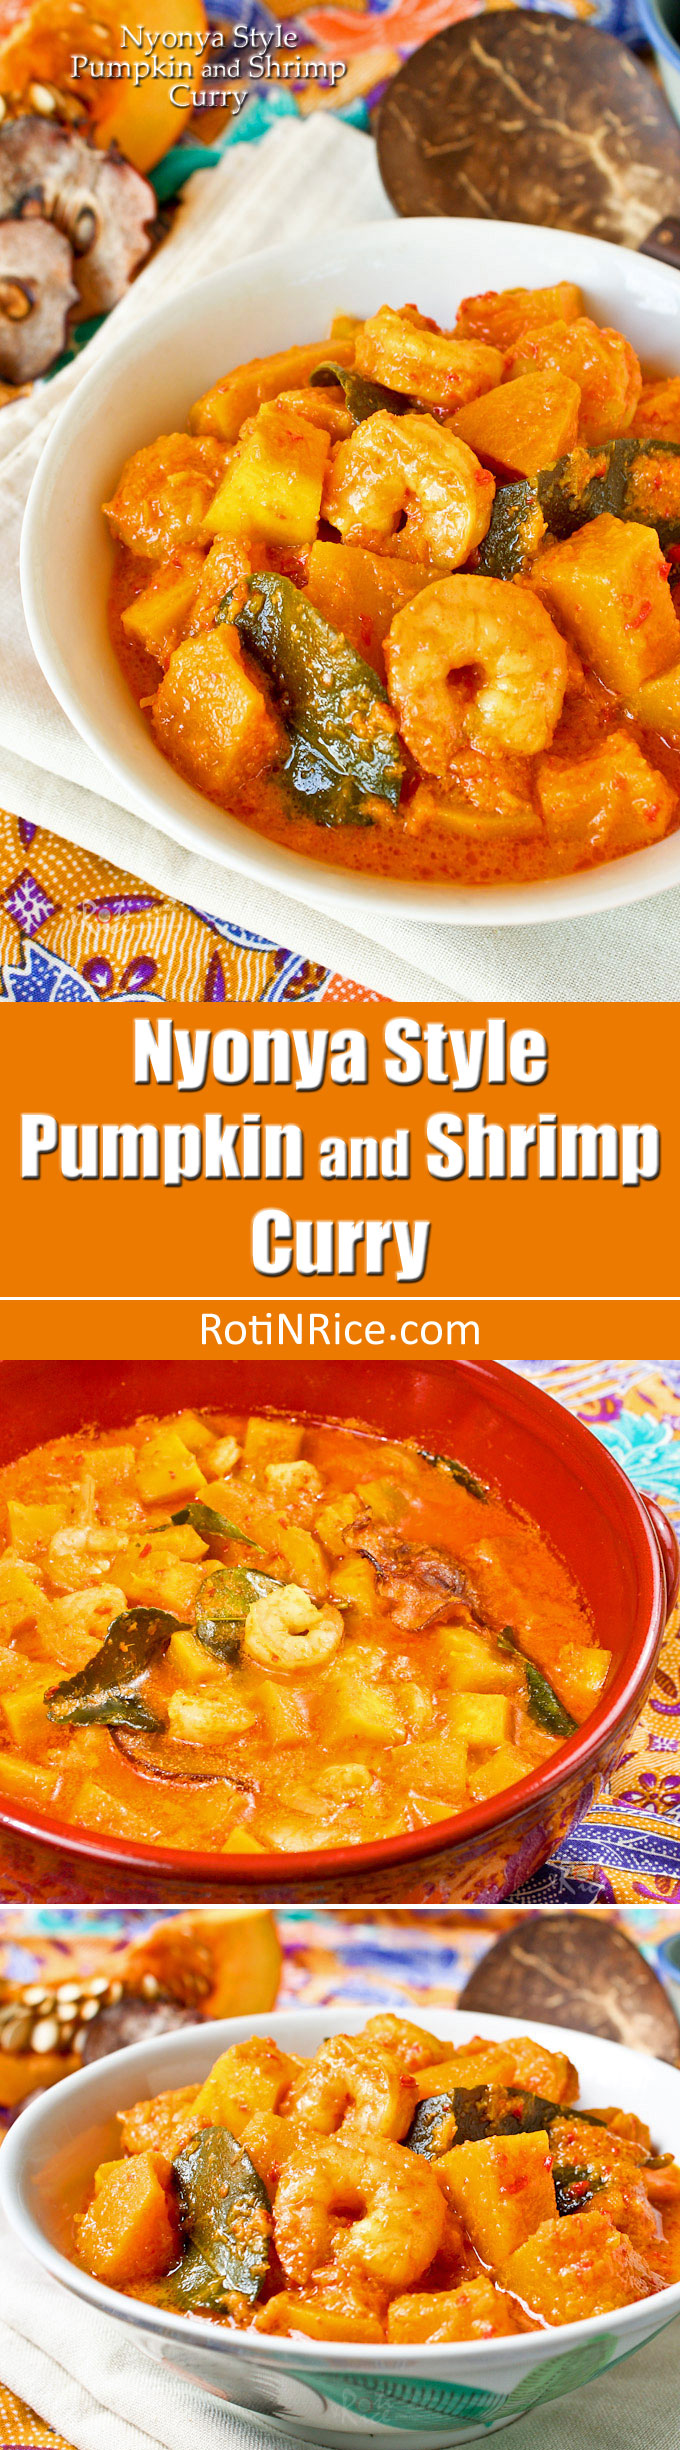 Aromatic Nyonya Style Pumpkin and Shrimp Curry in a creamy, spicy, and tangy sauce. Very appetizing and delicious served with rice. | RotiNRice.com